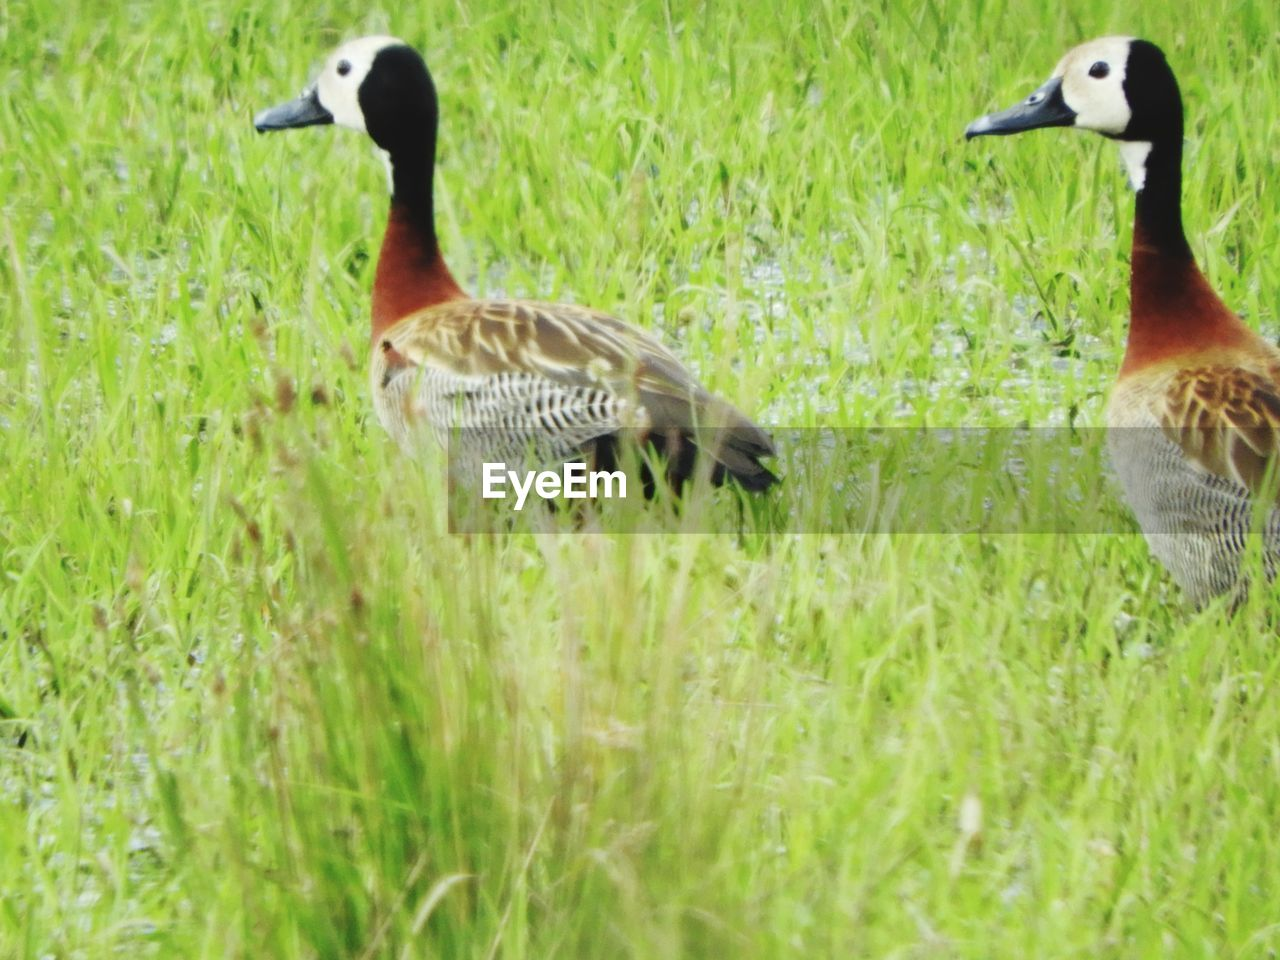 gosling, bird, animal themes, goose, animals in the wild, grass, animal family, geese, young bird, canada goose, field, water bird, nature, day, no people, togetherness, animal wildlife, greylag goose, outdoors